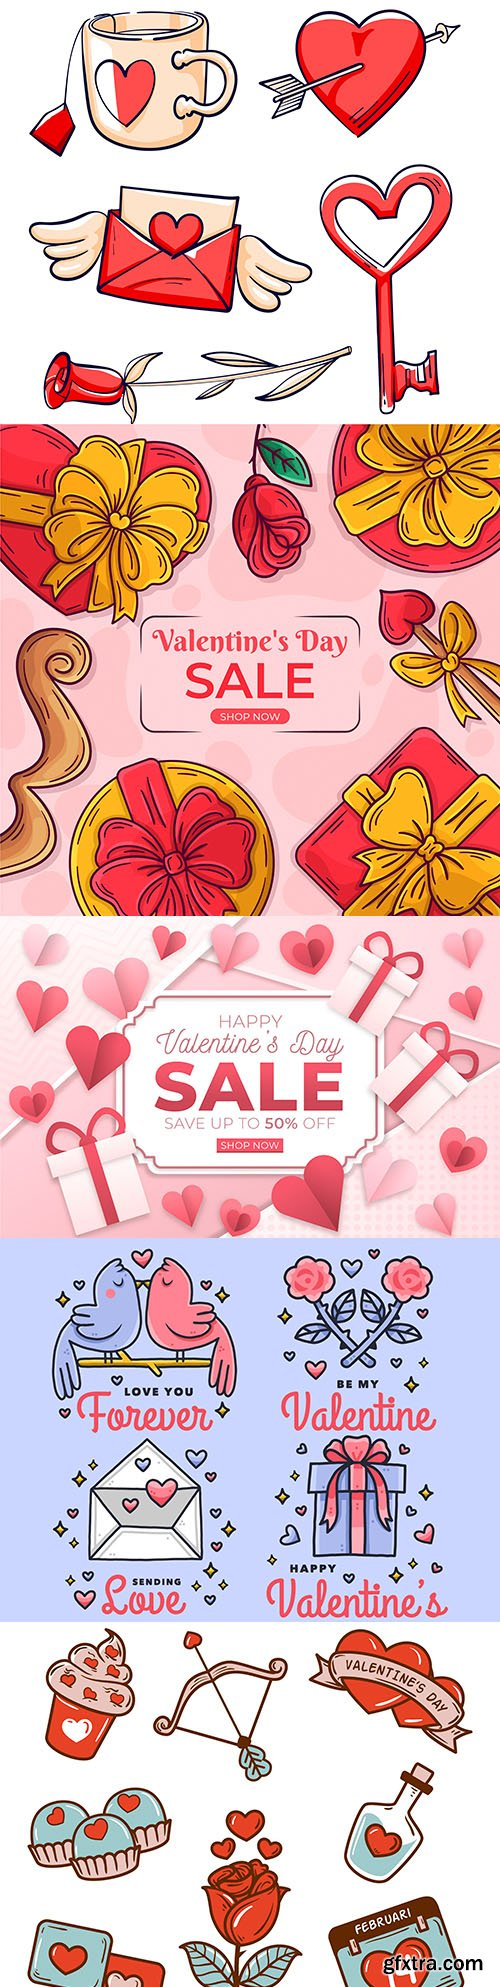 Valentine's Day sale and collection of illustration icons